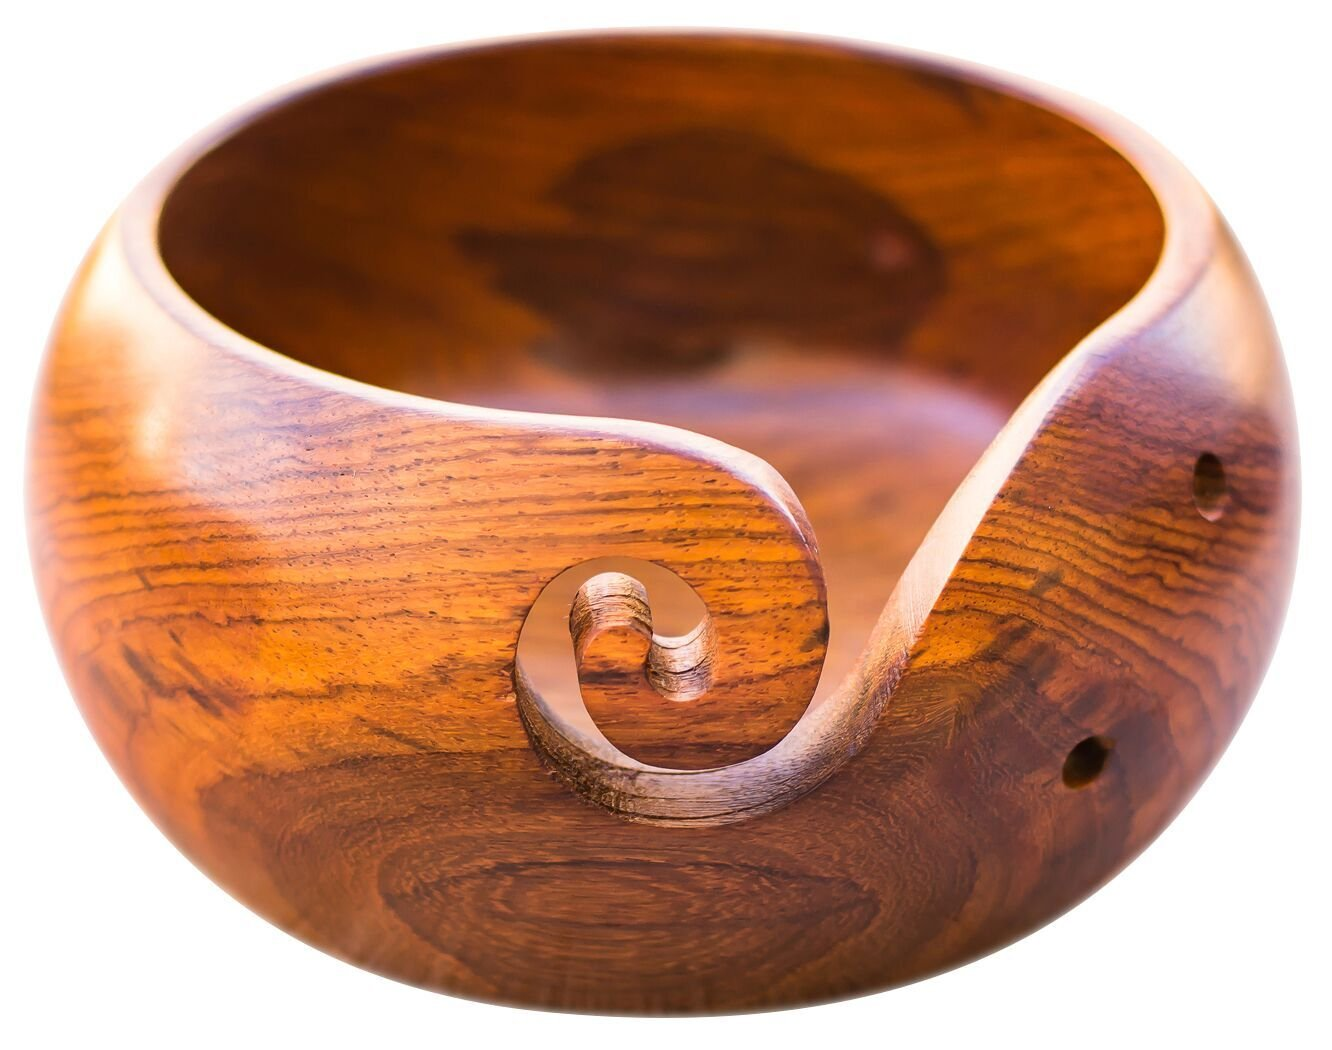 Wooden Yarn Bowl Holder Rosewood - Knitting Bowl With Holes Storage - Crochet Yarn Holder Bowl - Perfect For Mother's Day! Craft Mamas